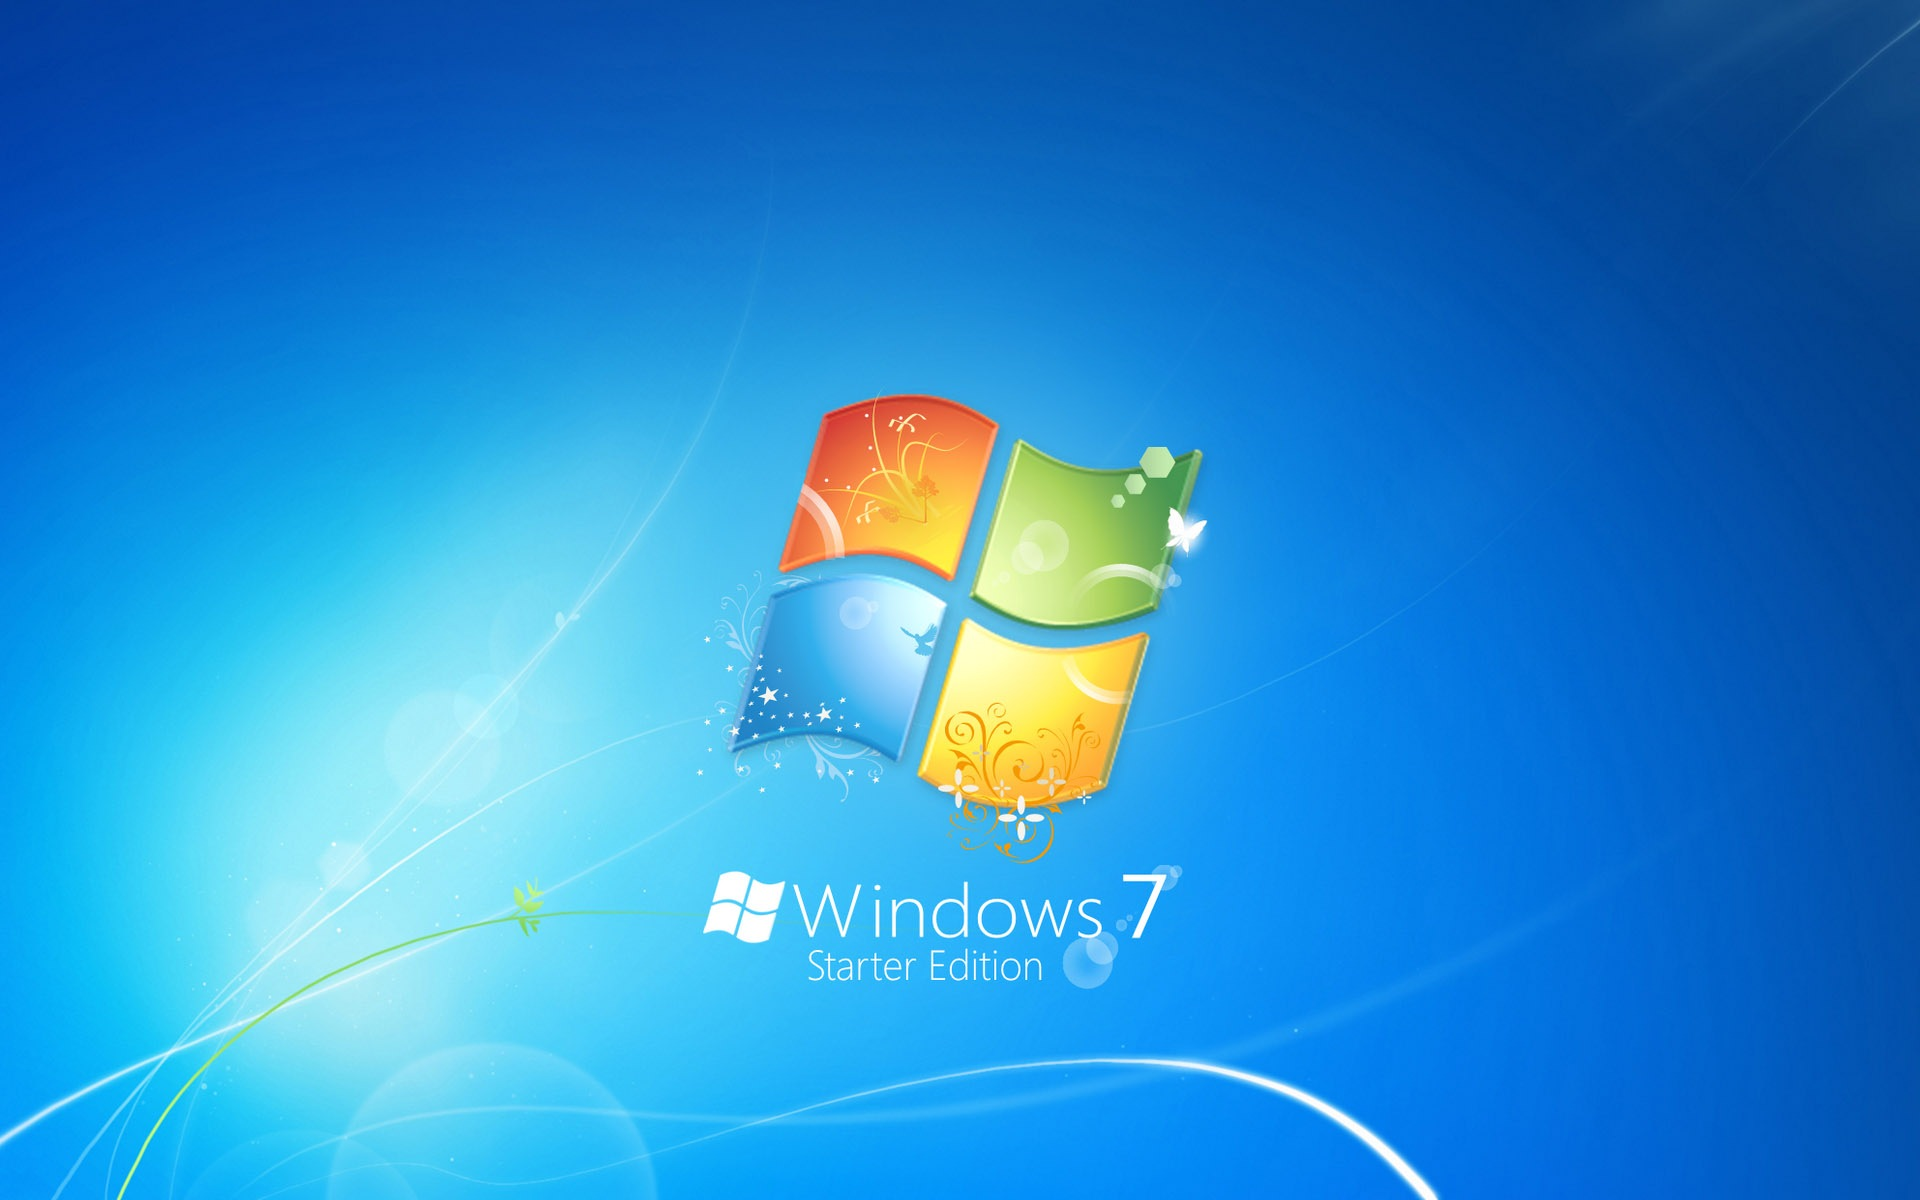 windows7 1920x1200 hd 1610 1280x8001440x9001680x10501920x1200 voltagebd Choice Image